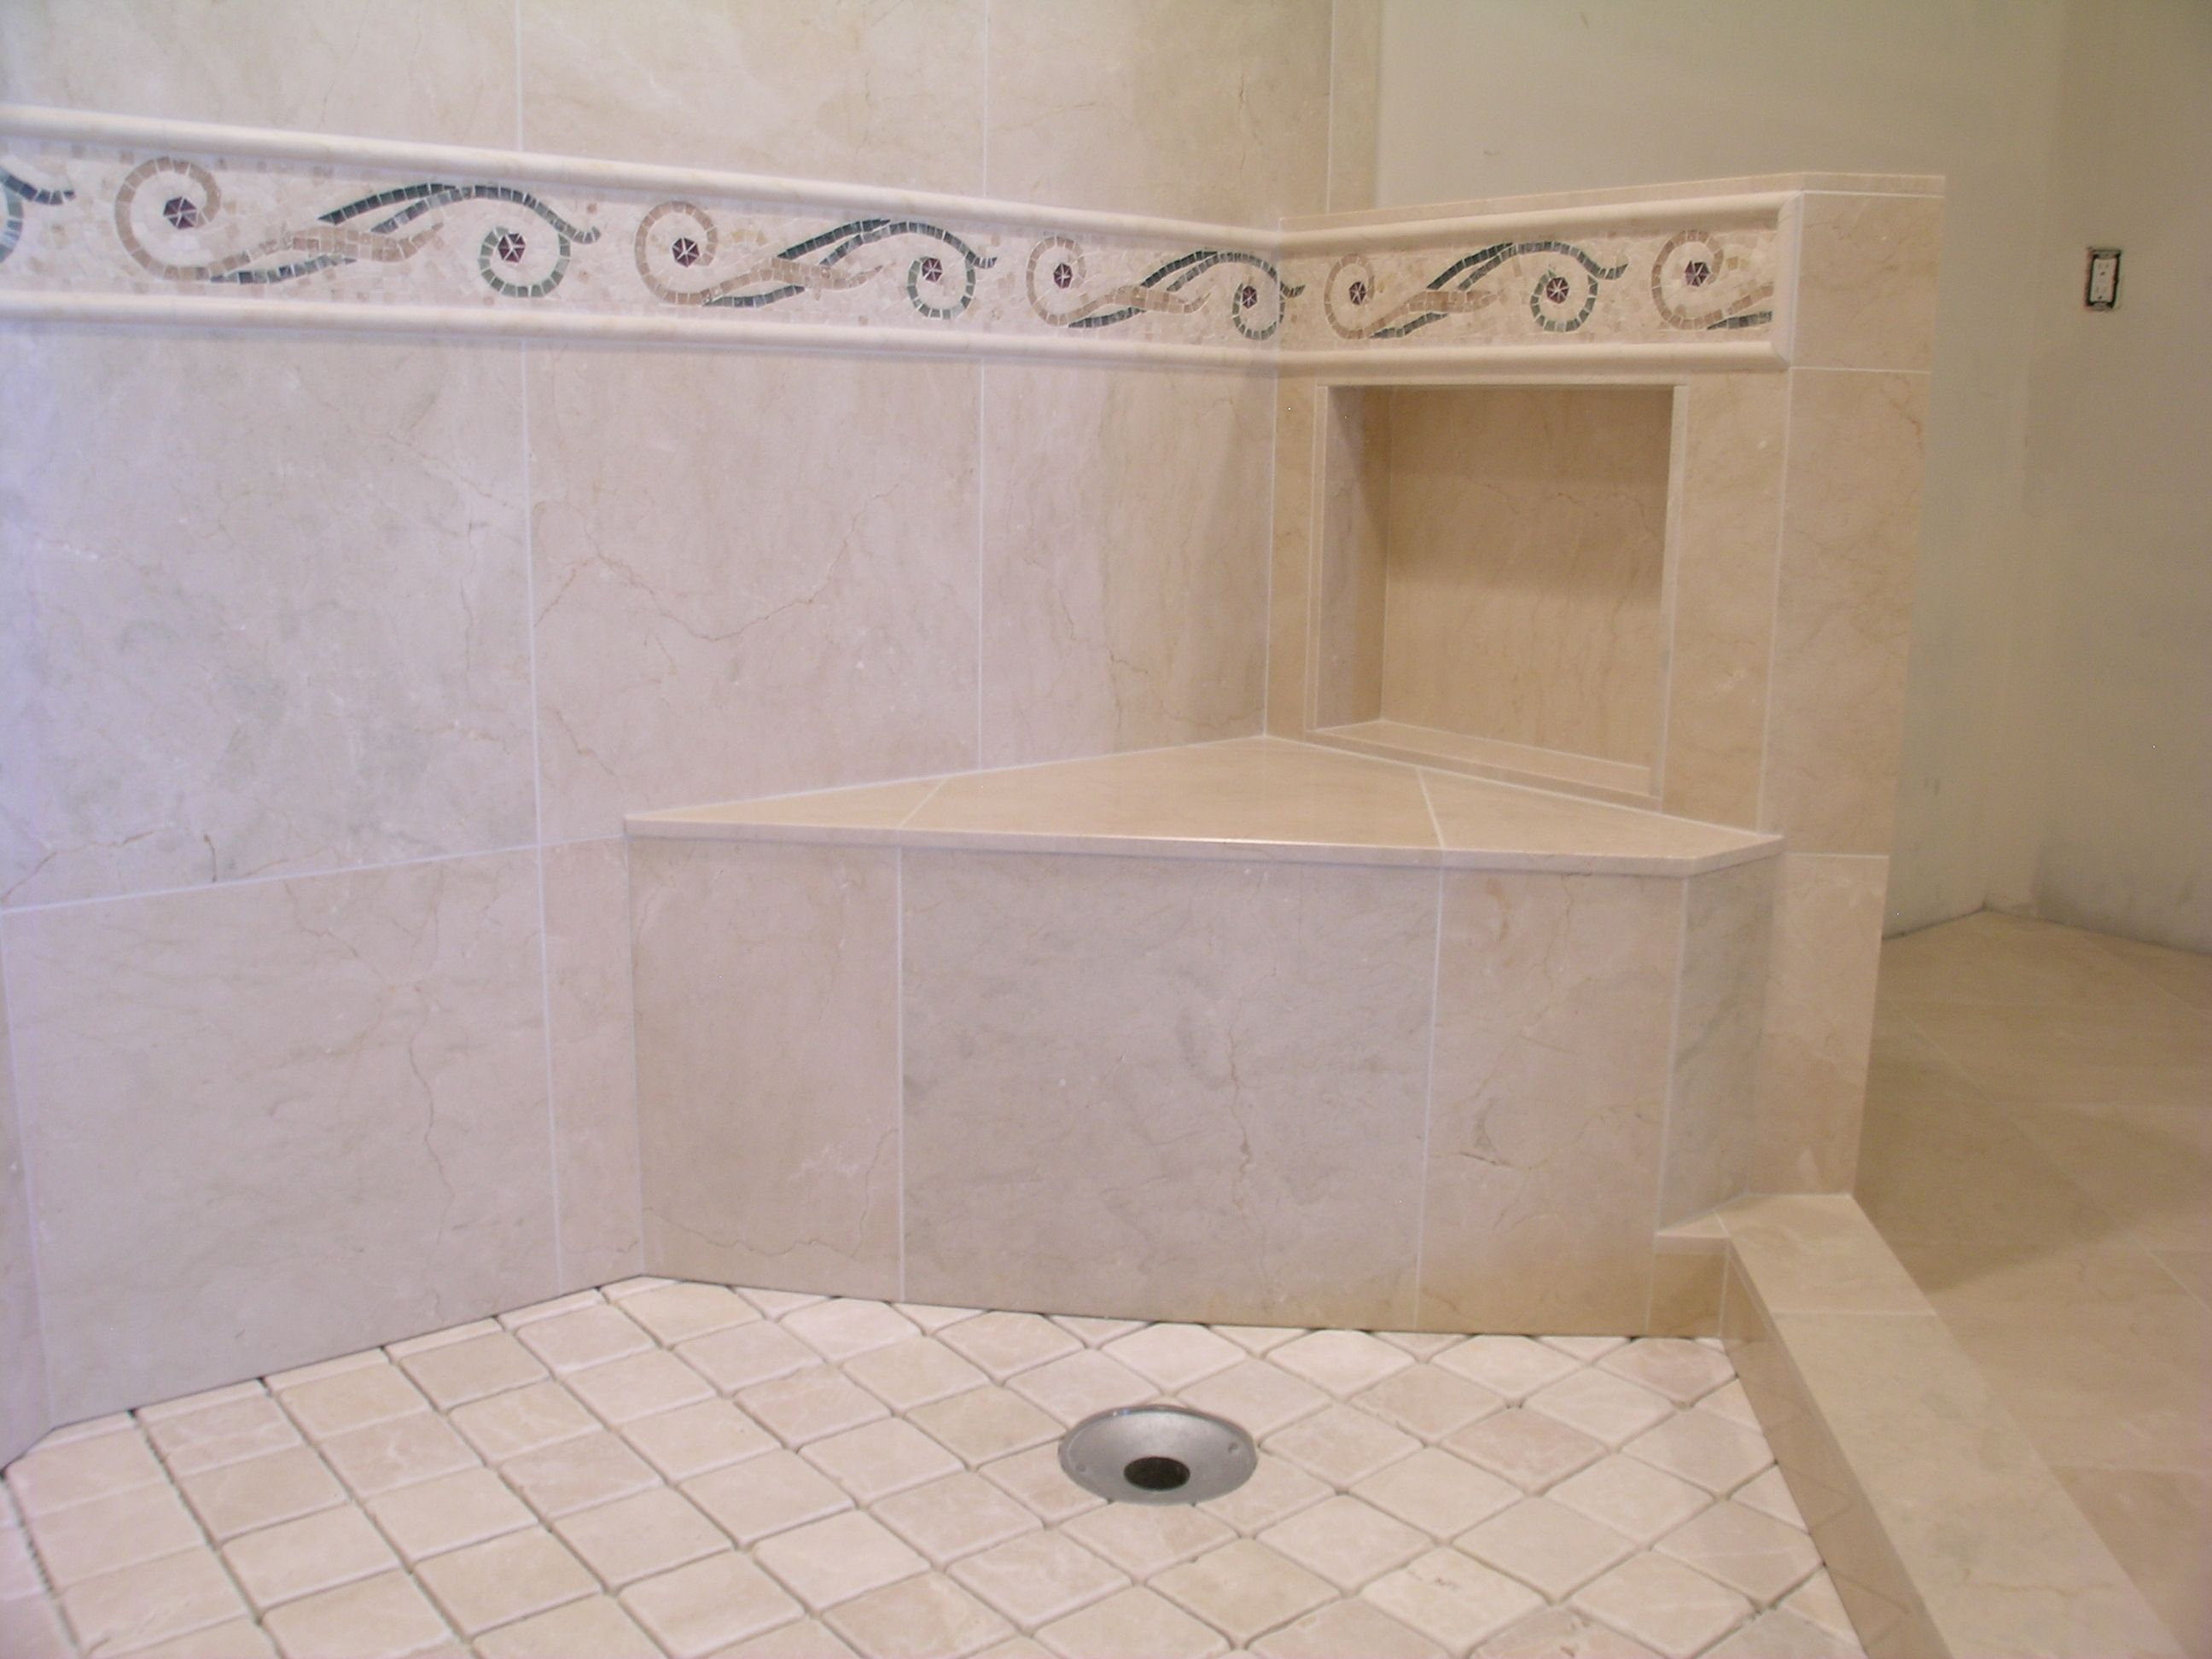 Shower seat, Mosaics and Showers on Pinterest